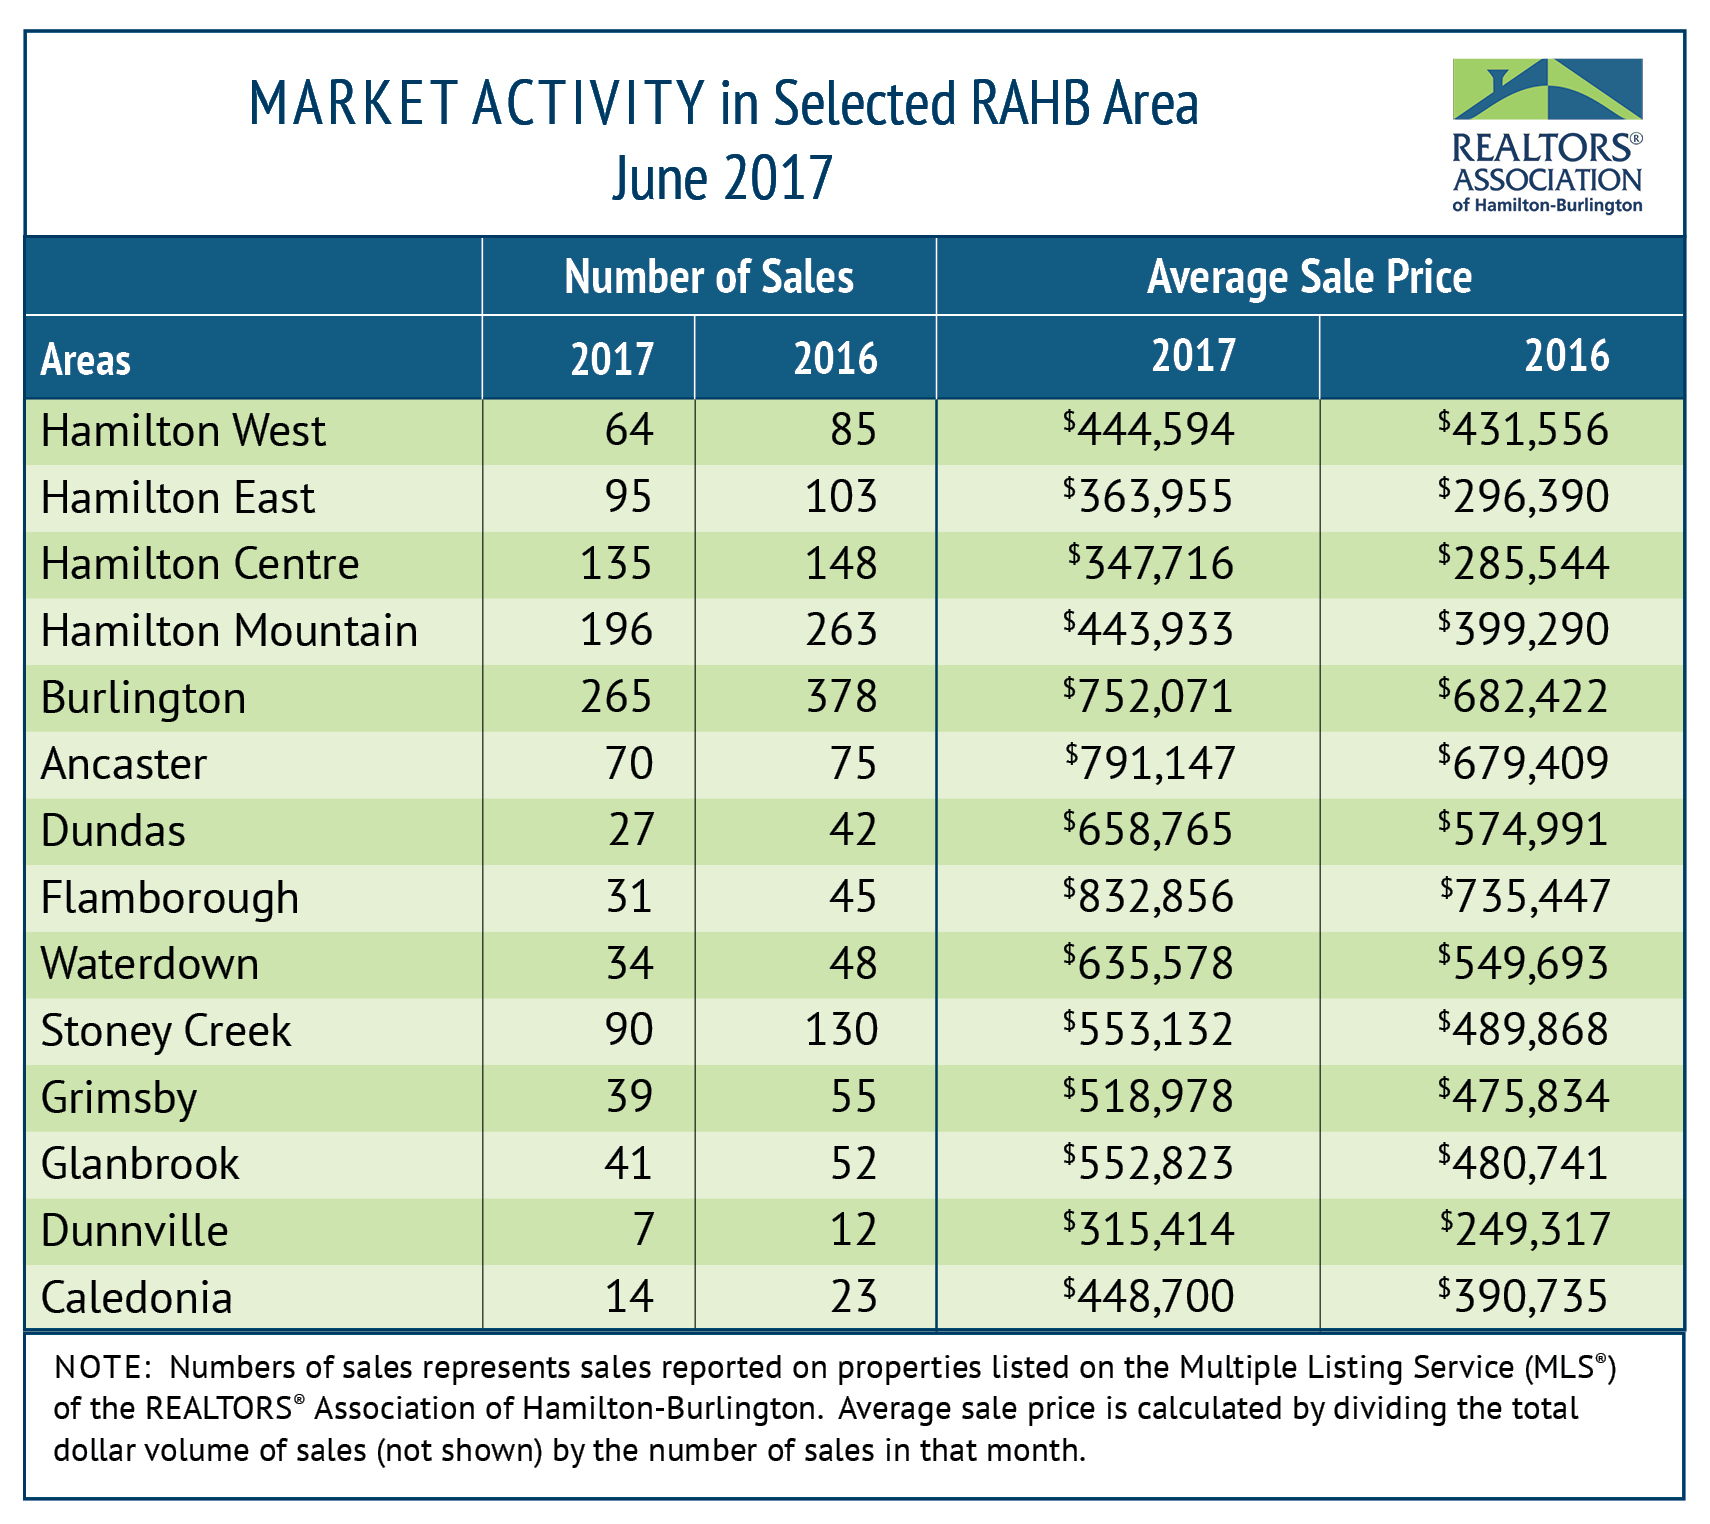 RAHB Market Activity for June 2017